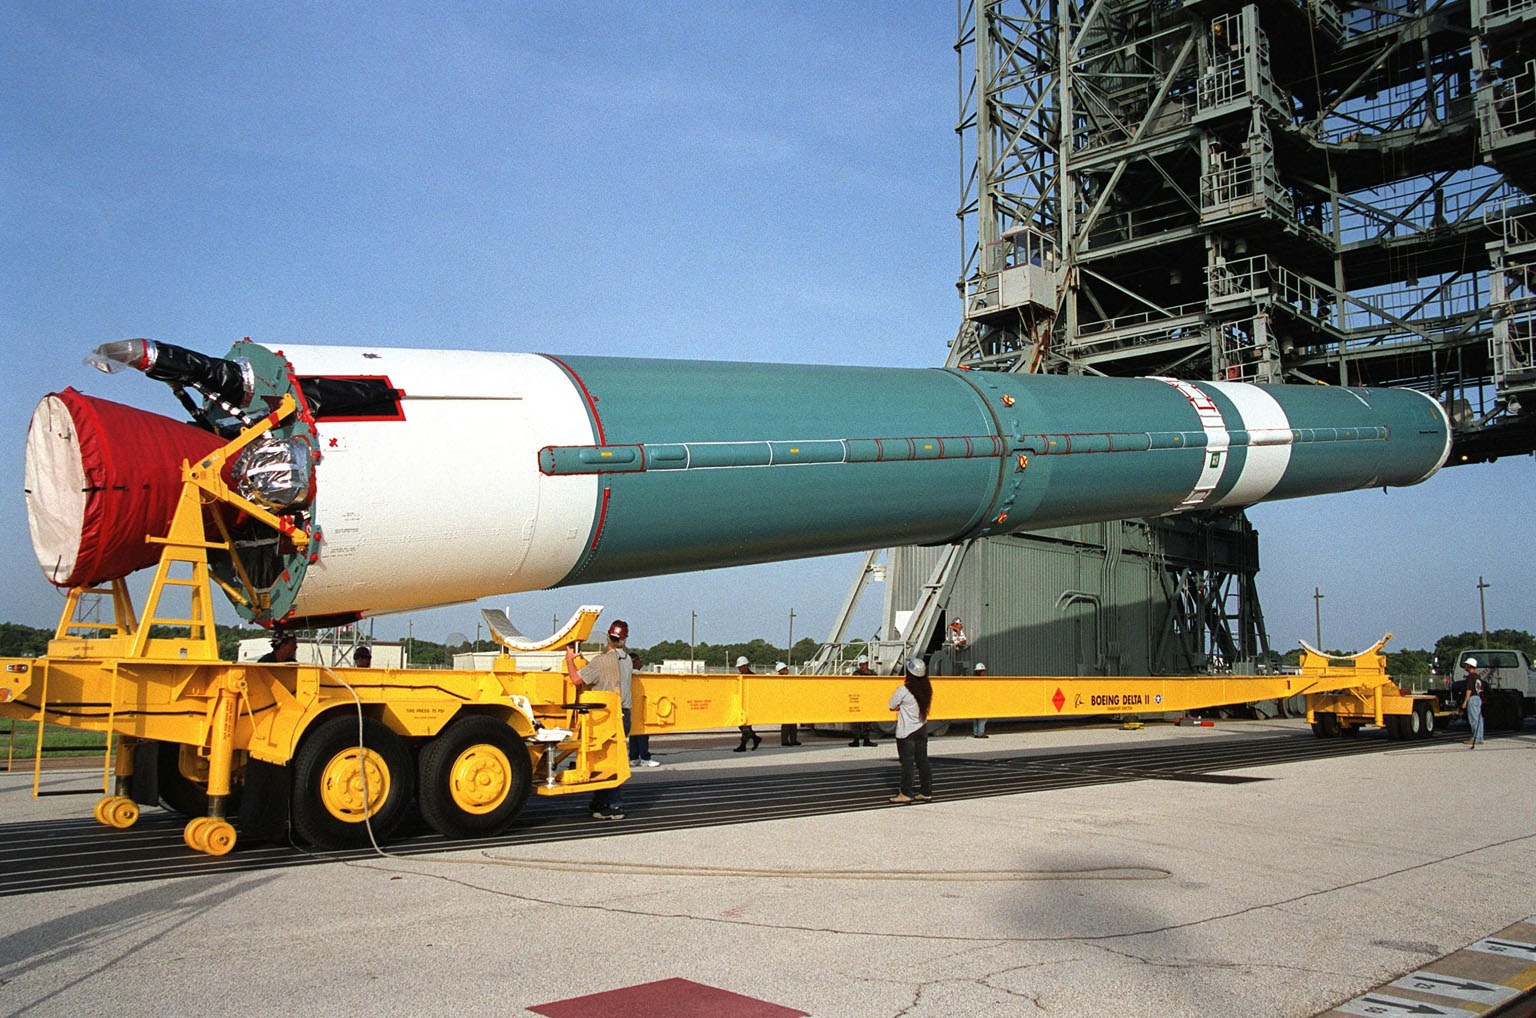 KENNEDY SPACE CENTER, Fla. -- The first stage of a Boeing Delta II rocket arrives on Launch Complex 17A, Cape Canaveral Air Force Station. The rocket will propel the Genesis spacecraft on a journey to capture samples of the ions and elements in the solar wind and return them to Earth for scientists to use to determine the exact composition of the Sun and the solar system?s origin. NASA's Genesis project in managed by the Jet Propulsion Laboratory in Pasadena, Calif. Lockheed Martin Astronautics built the Genesis spacecraft for NASA in Denver, Colo. The launch is scheduled for July 30 at 12:36 p.m. EDT